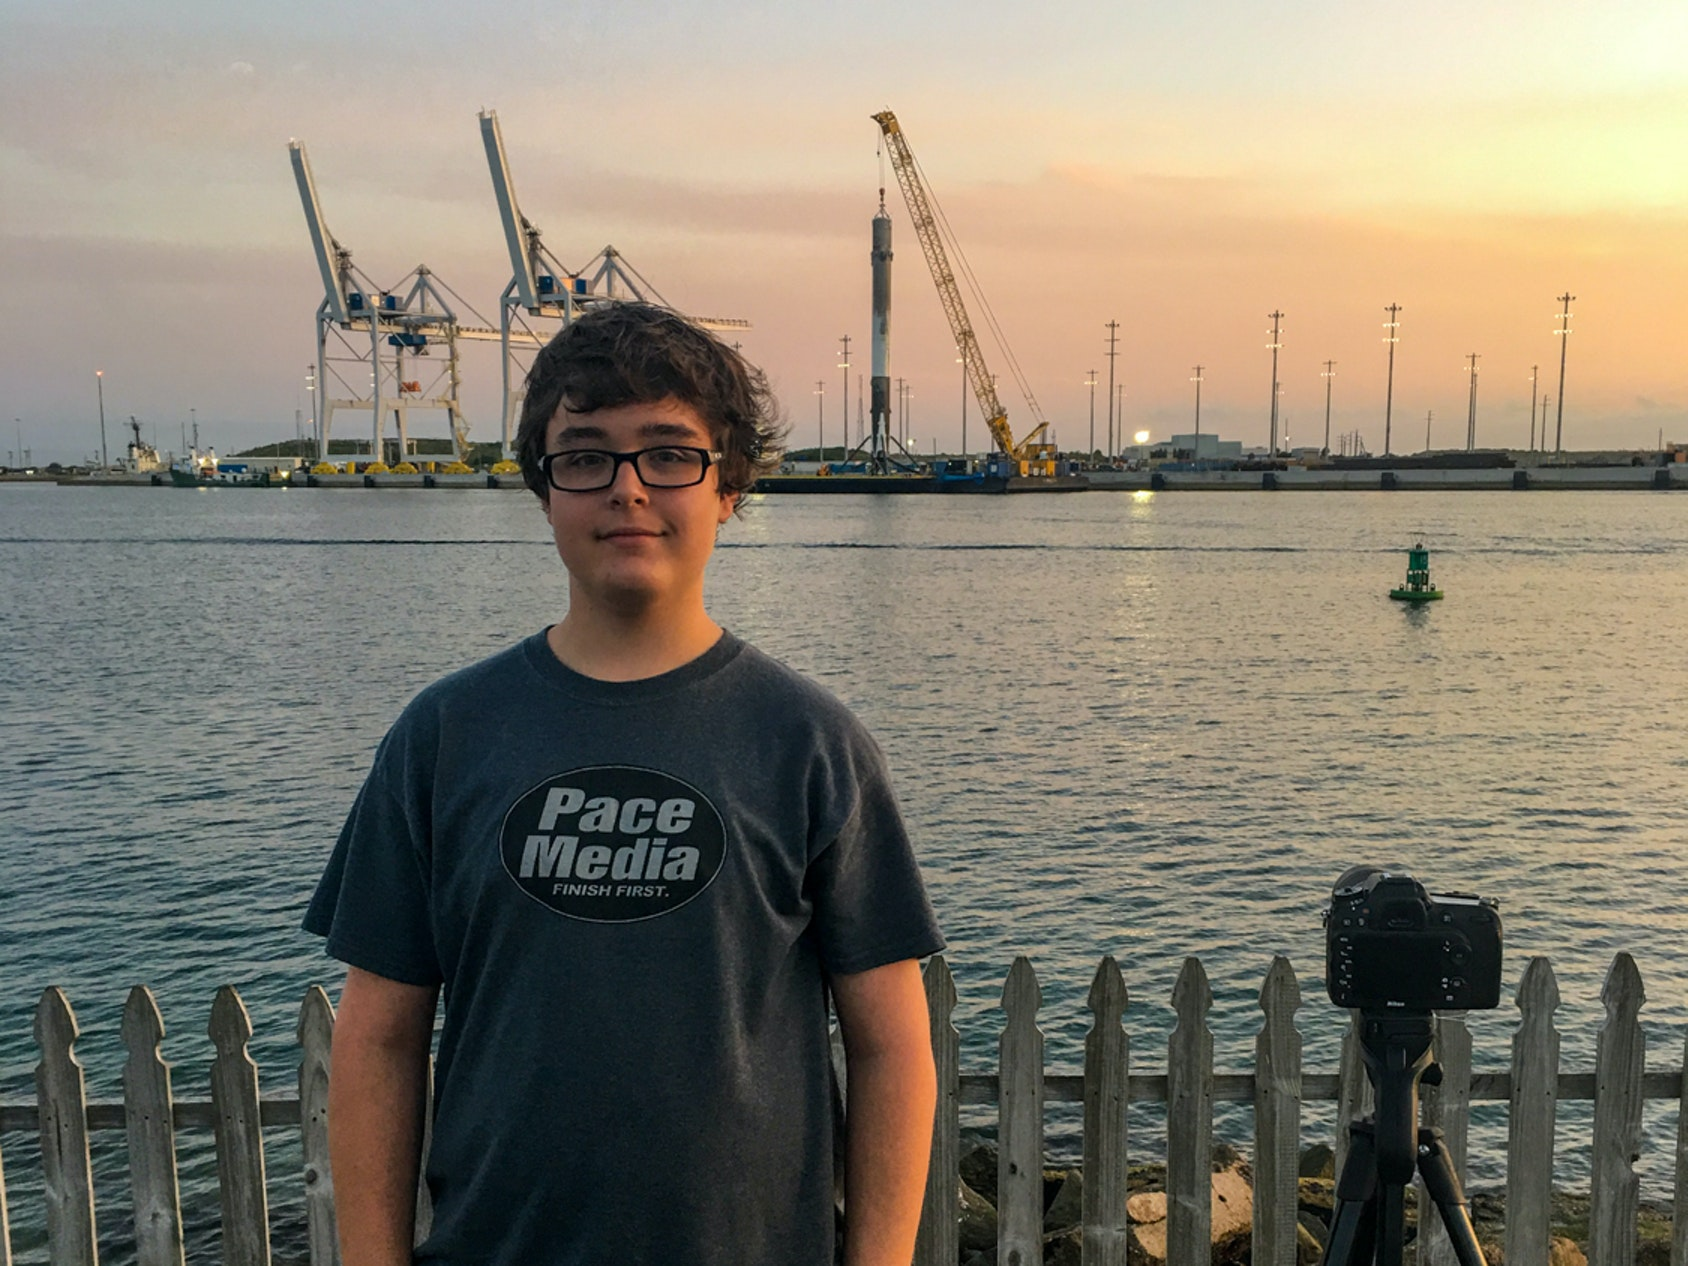 The World's Best Rocket Launch Photographer Is 16